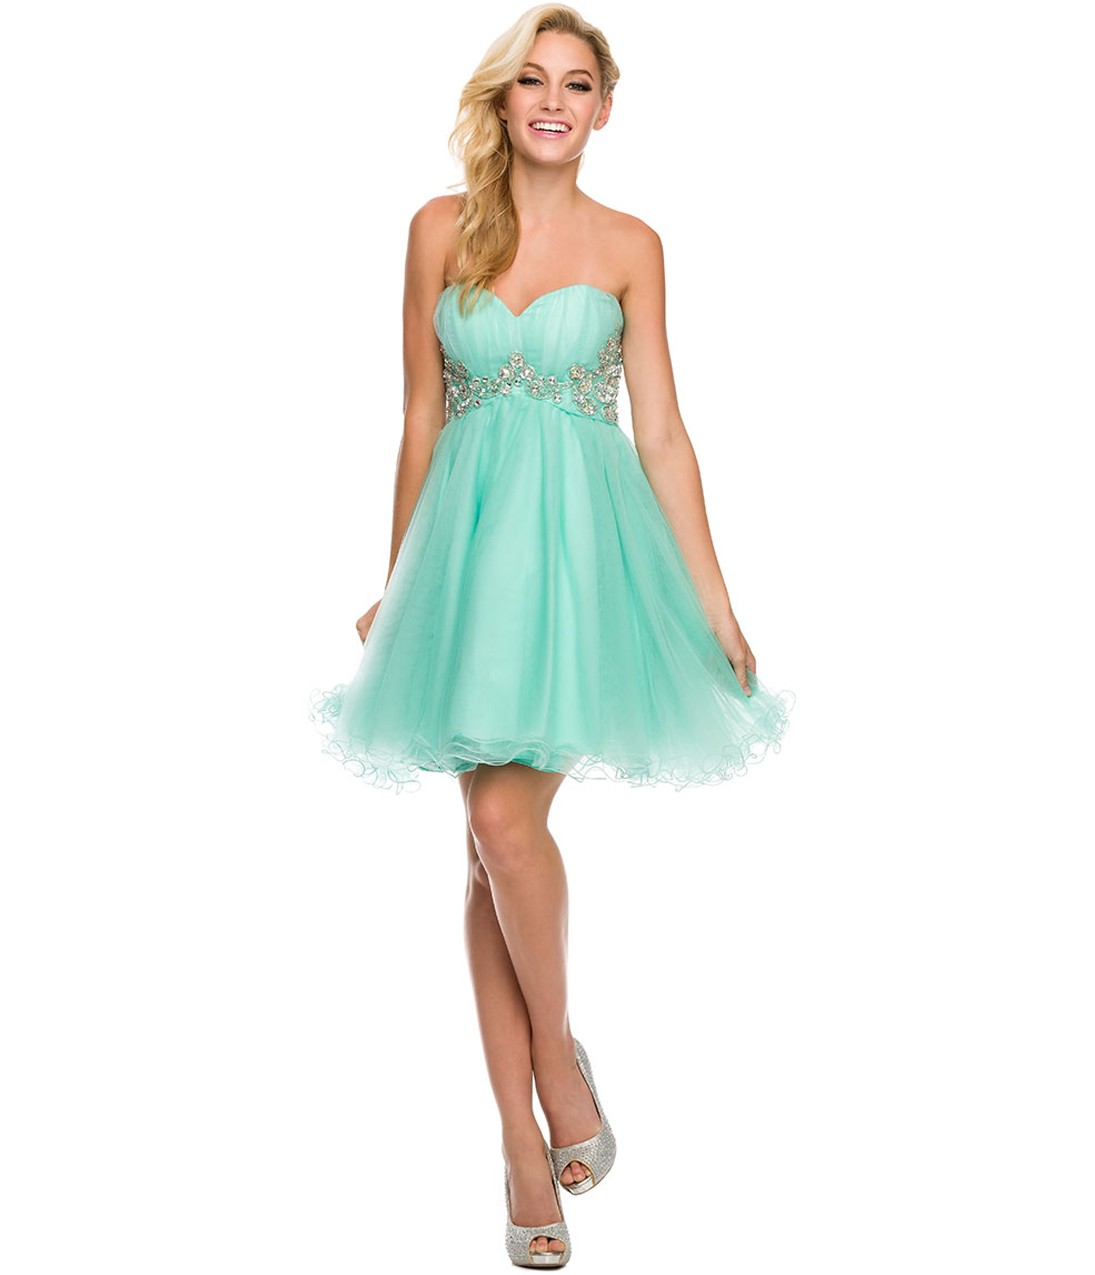 Strapless Sweetheart Pleated Short Chiffon Prom Dress with Crystals